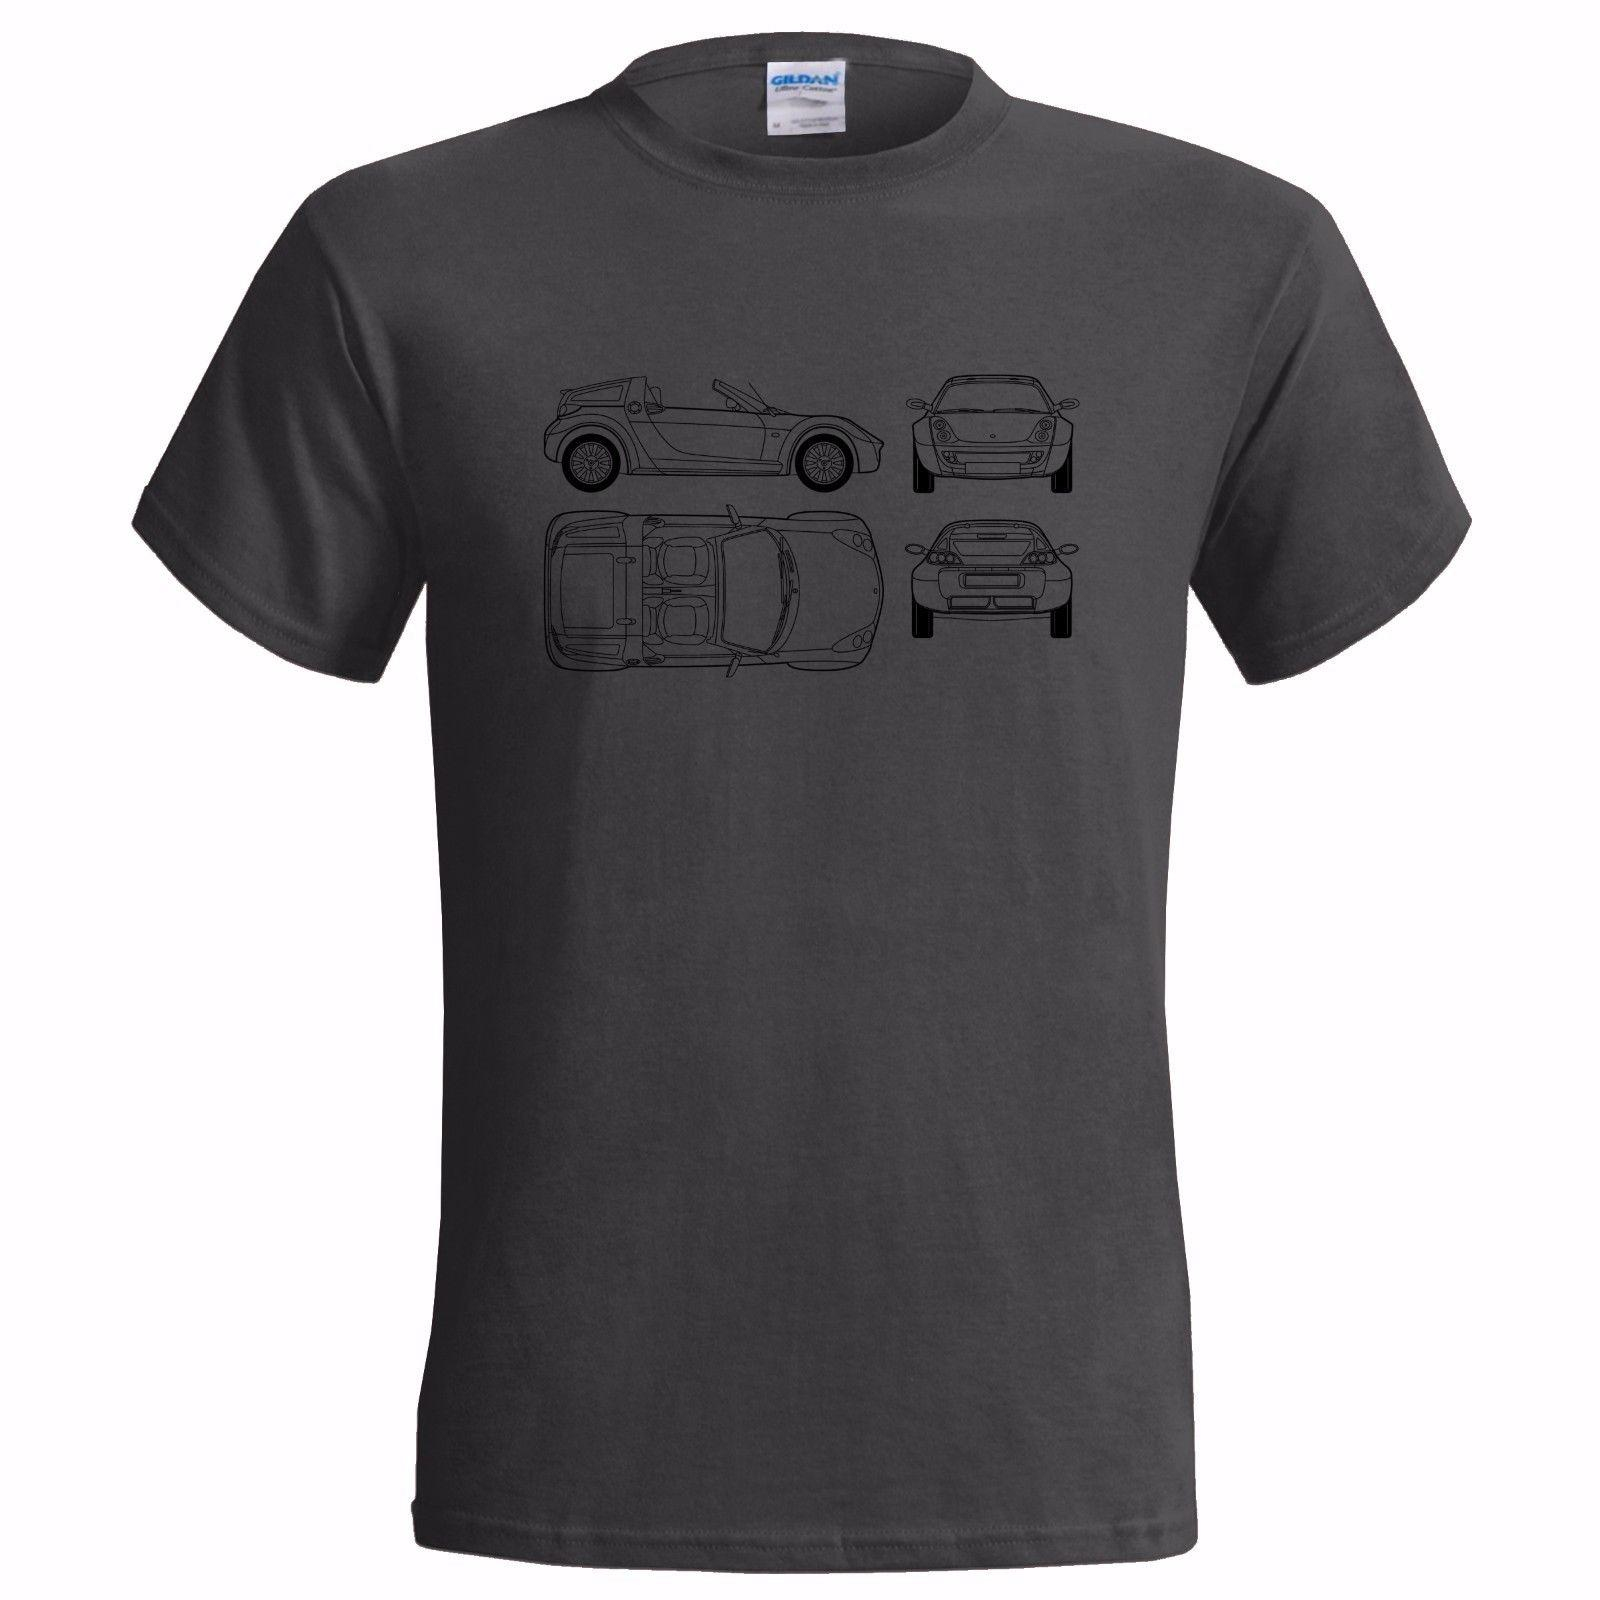 Unofficial Tech Drawing SMART ROADSTER MENS T SHIRT CLASSIC CAR SPORTS SPORT FASTHOUSE Musically